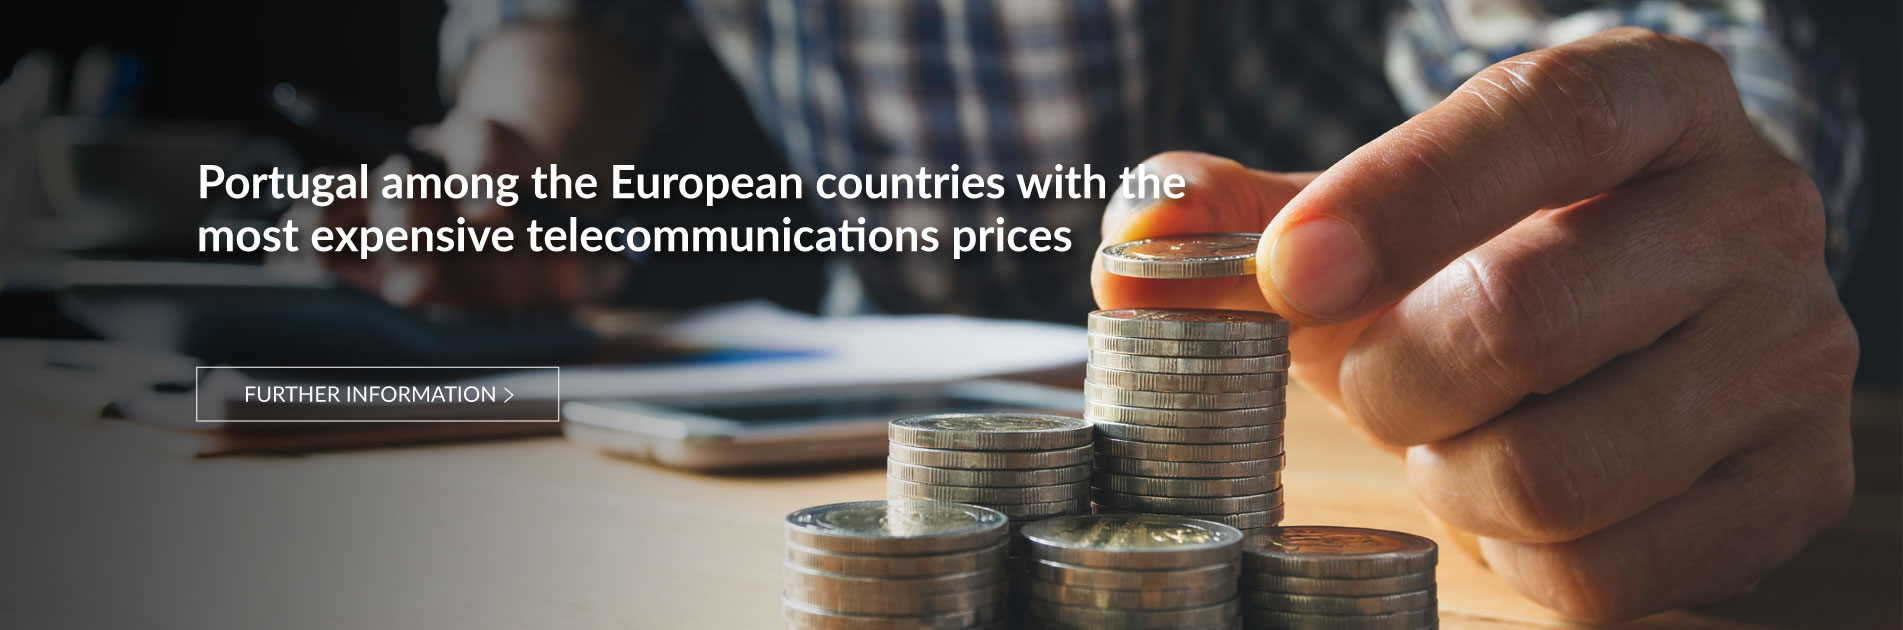 Between the end of 2009 and April 2020, telecommunications prices in Portugal increased by 7.7%, while in the UE they fell by 10.4%.